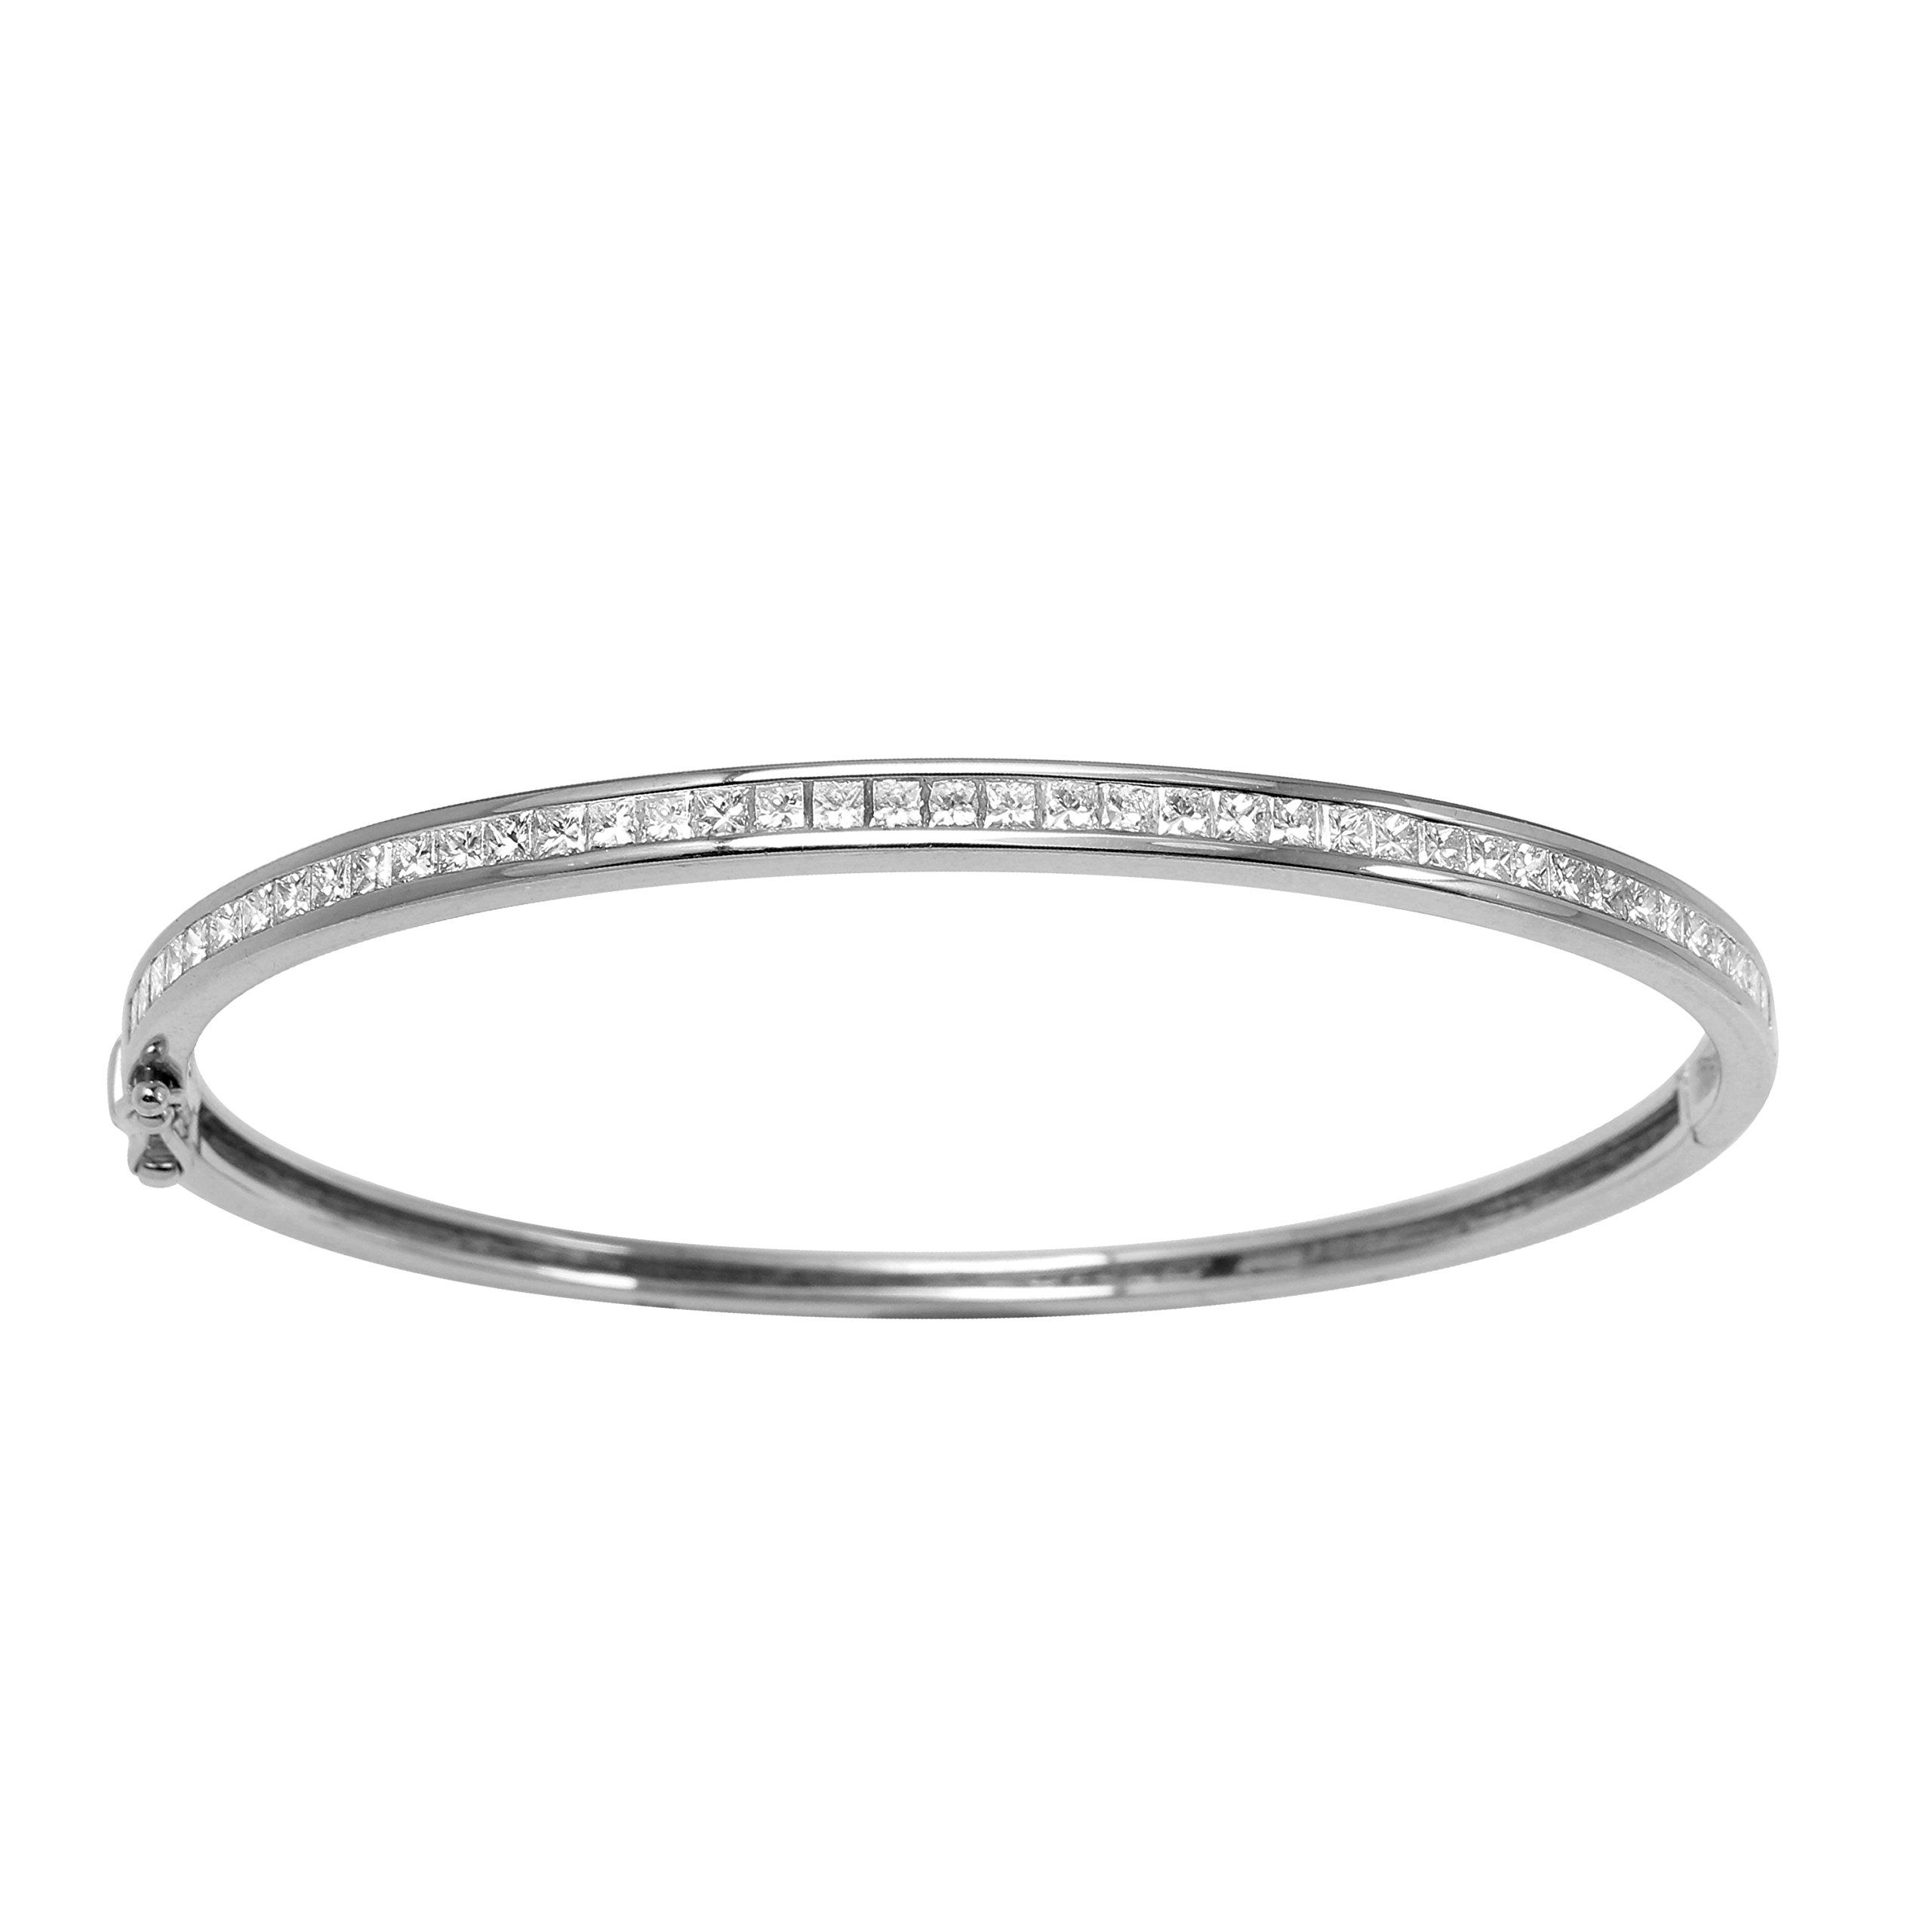 Genuine tcw k white gold ladies bangle gold color